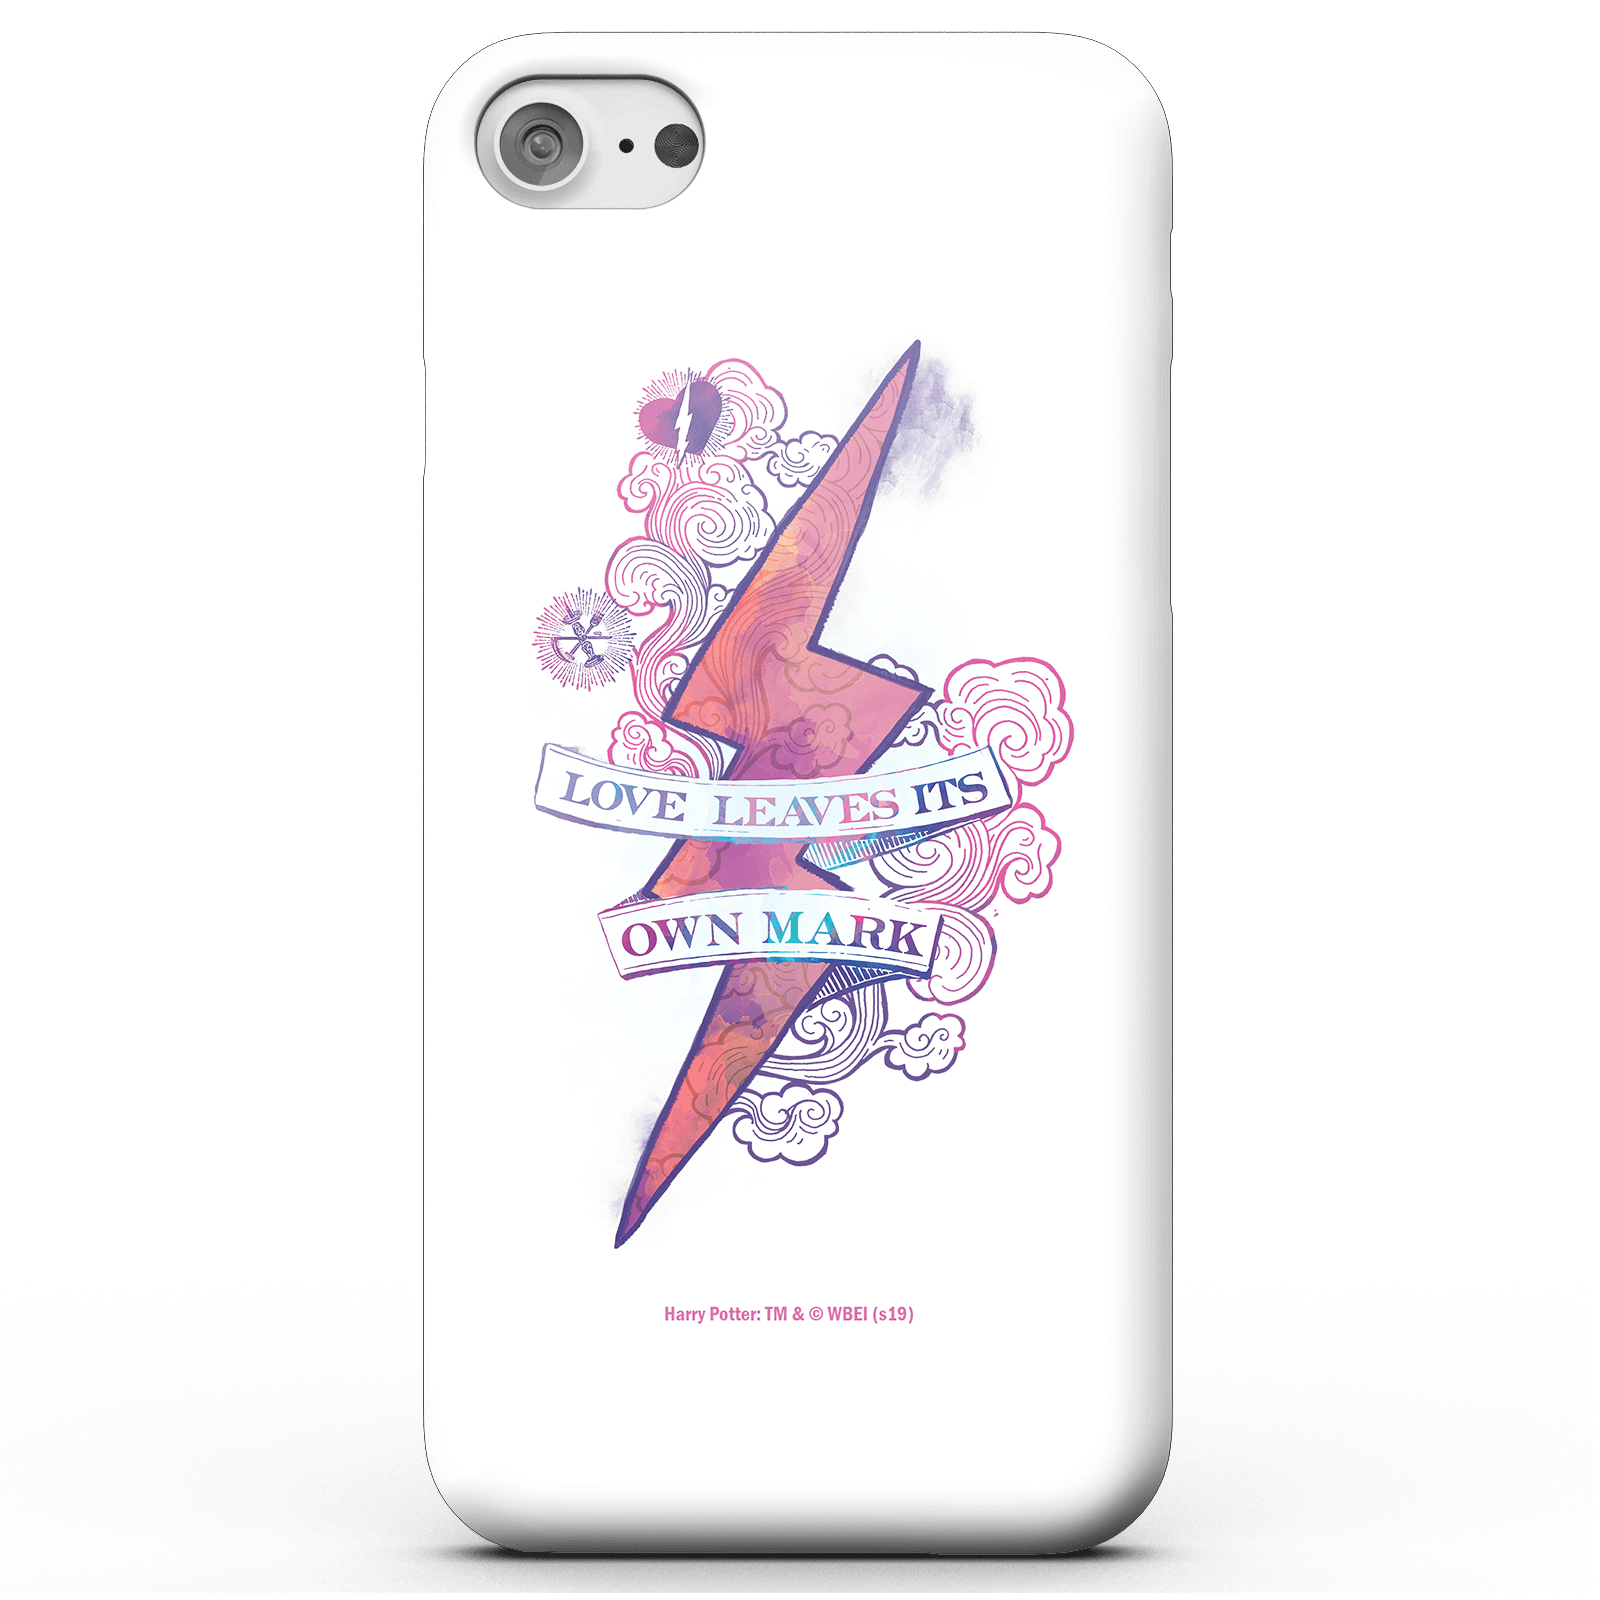 Funda Móvil Harry Potter Love Leaves Its Own Mark para iPhone y Android - Samsung S9 - Carcasa rígida - Mate de Harry Potter